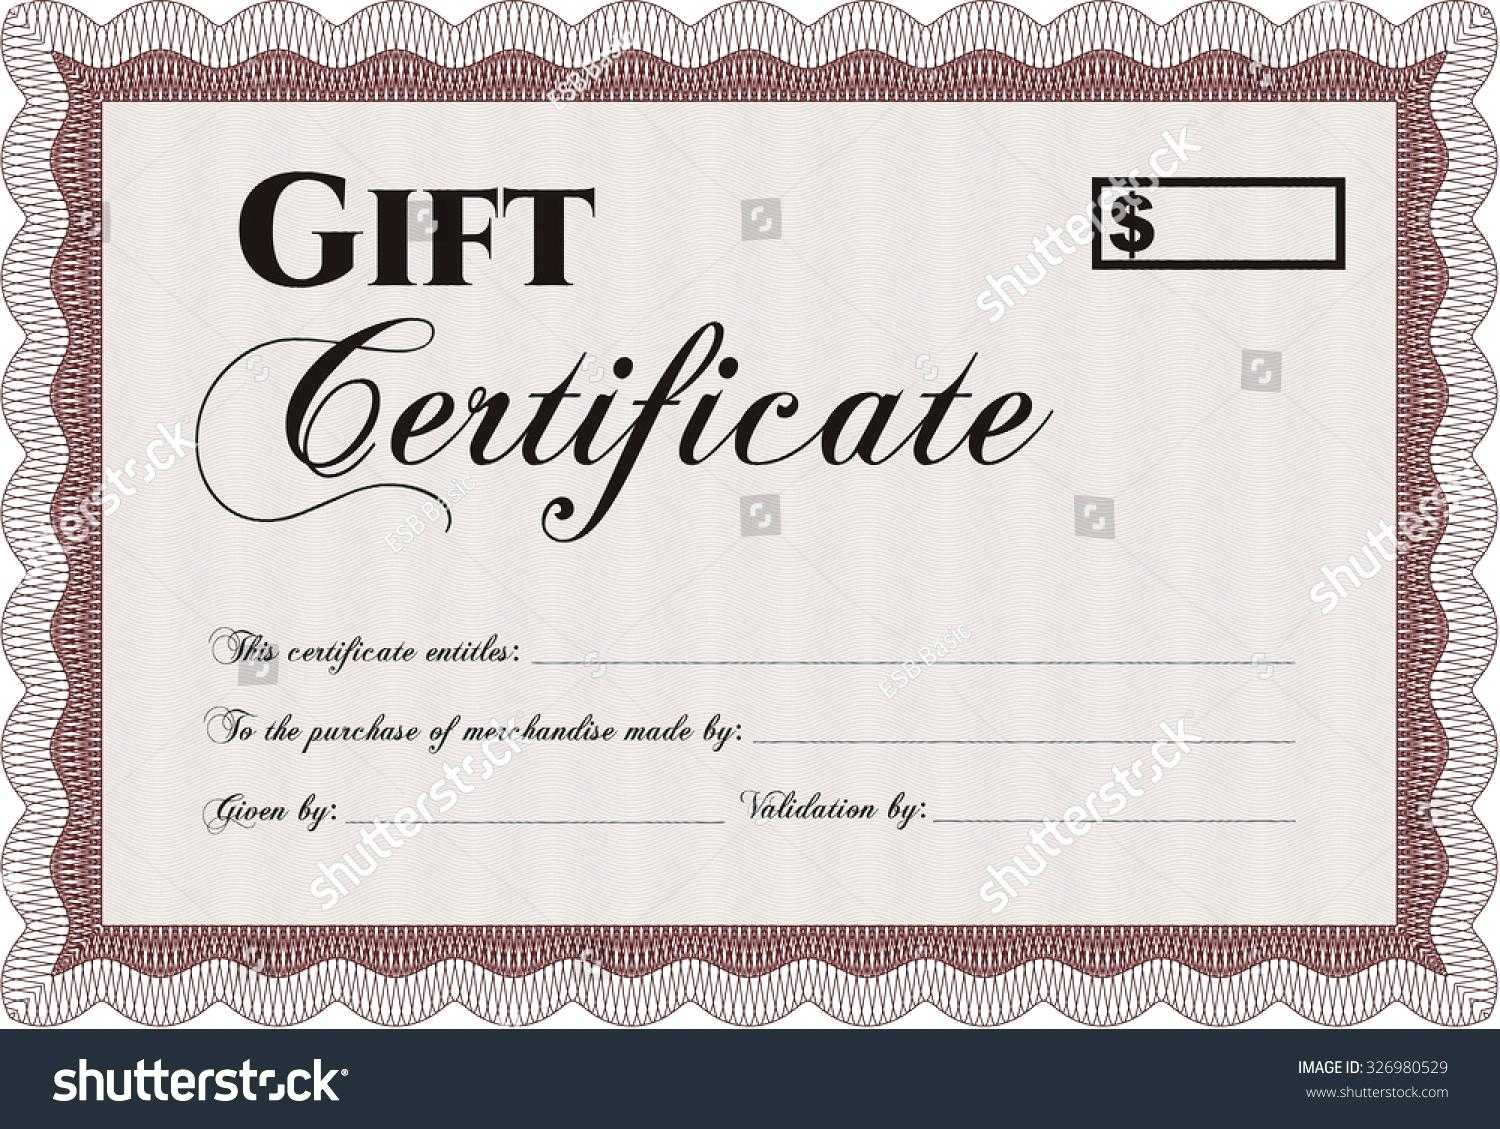 Bunch Ideas For This Certificate Entitles The Bearer Pertaining To This Entitles The Bearer To Template Certificate